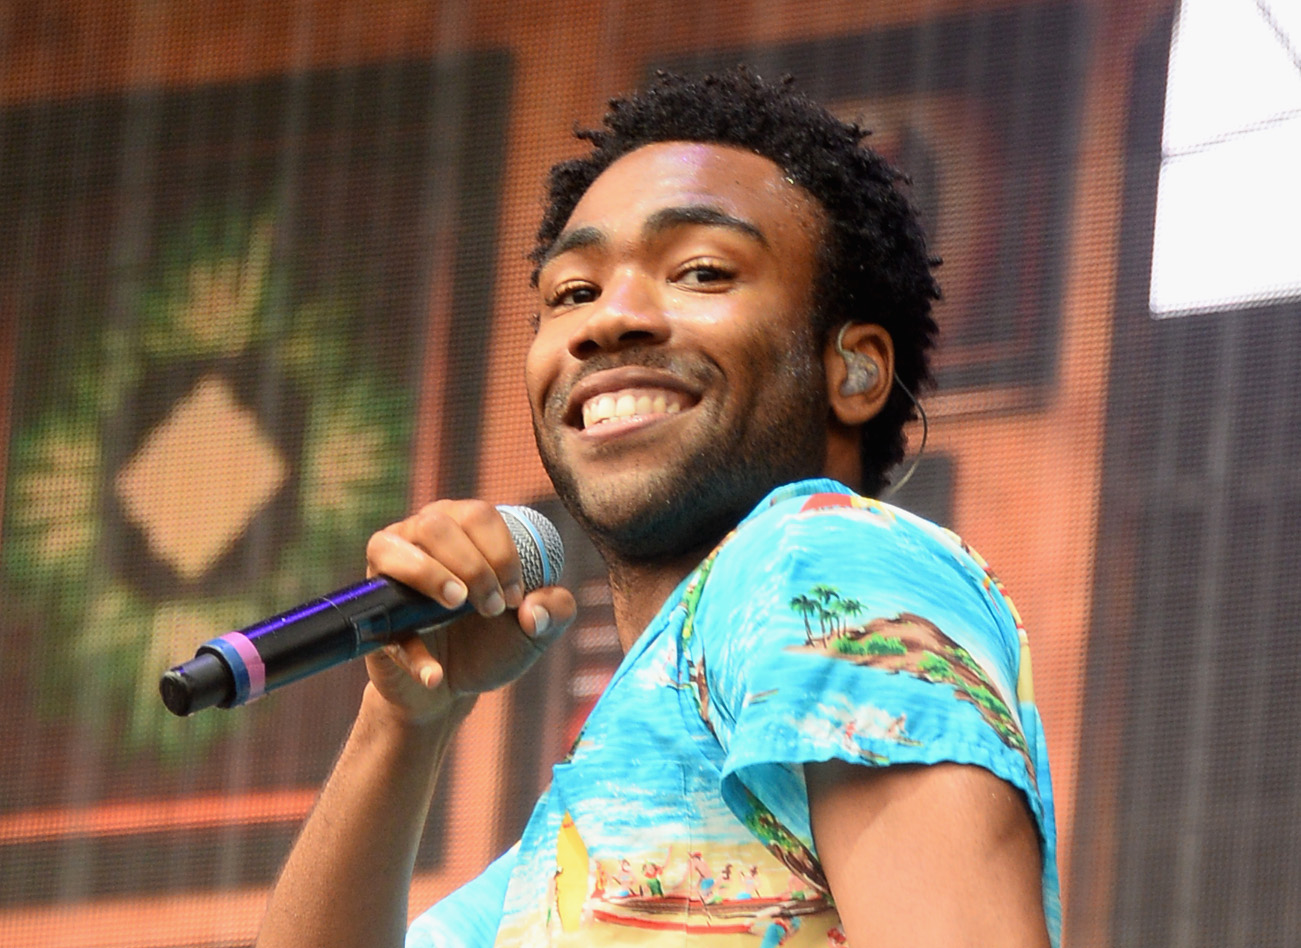 Donald Glover Facts